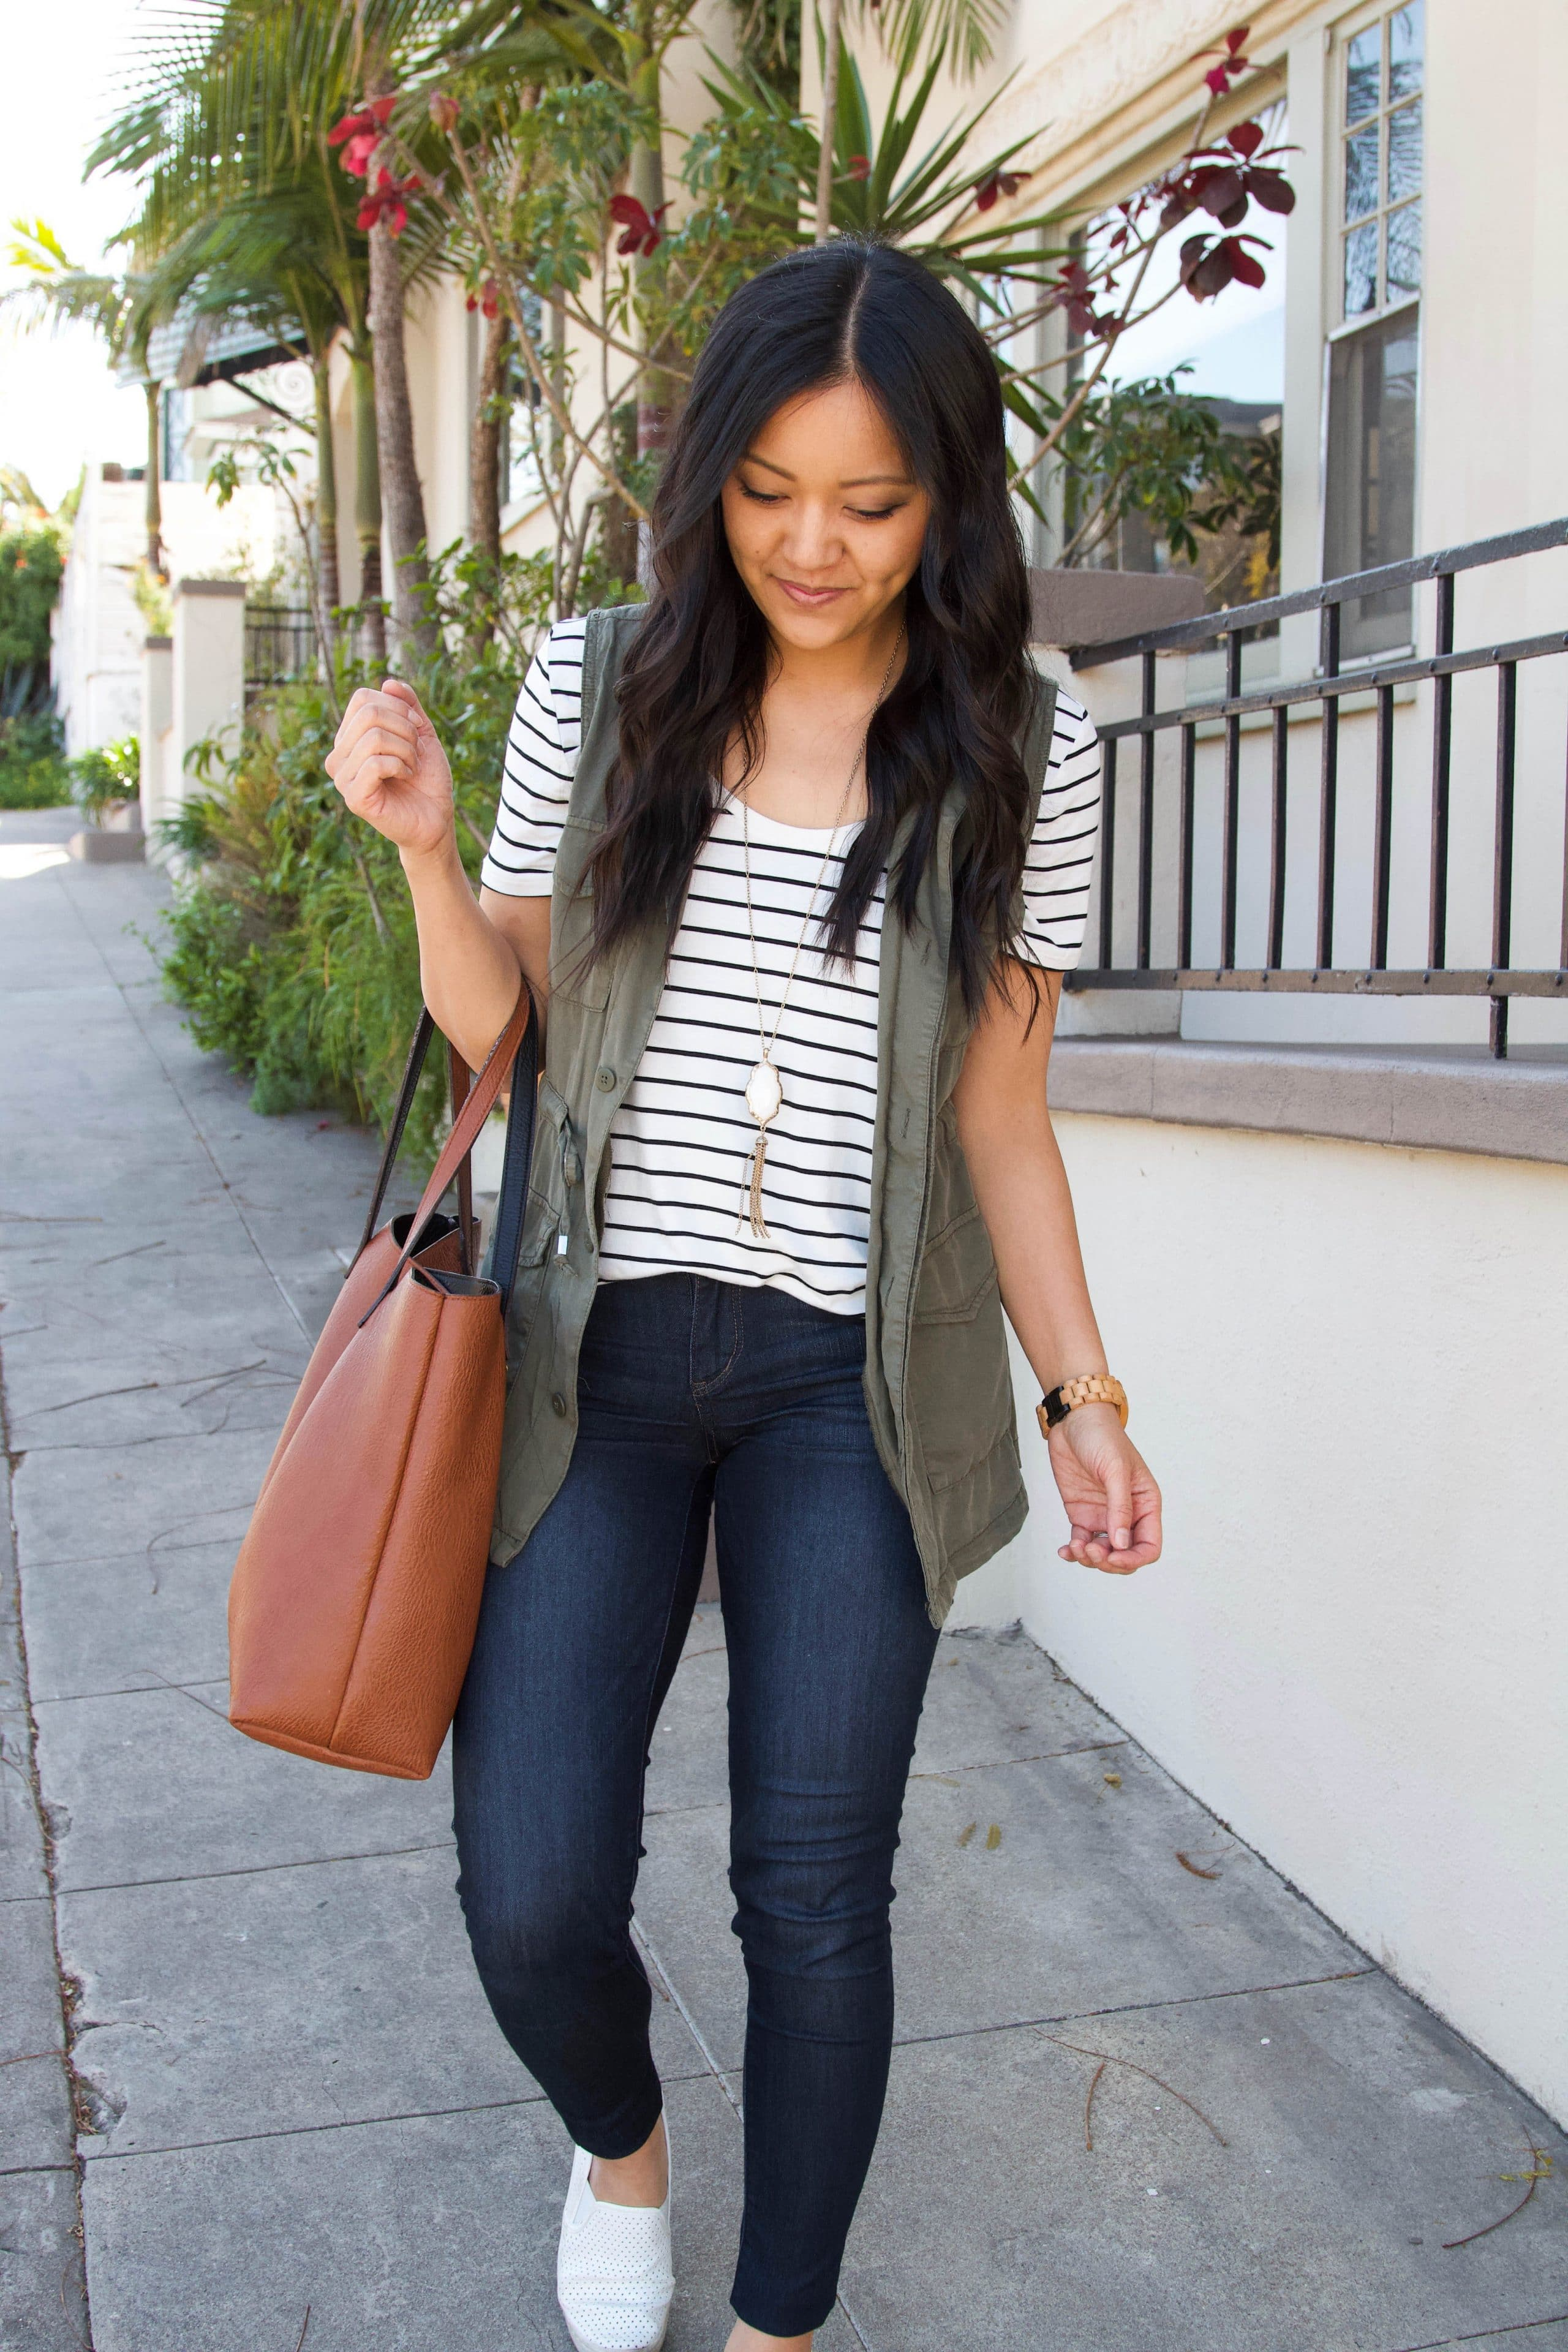 skinny jeans + striped tee + utility vest + brown tote + white sneakers